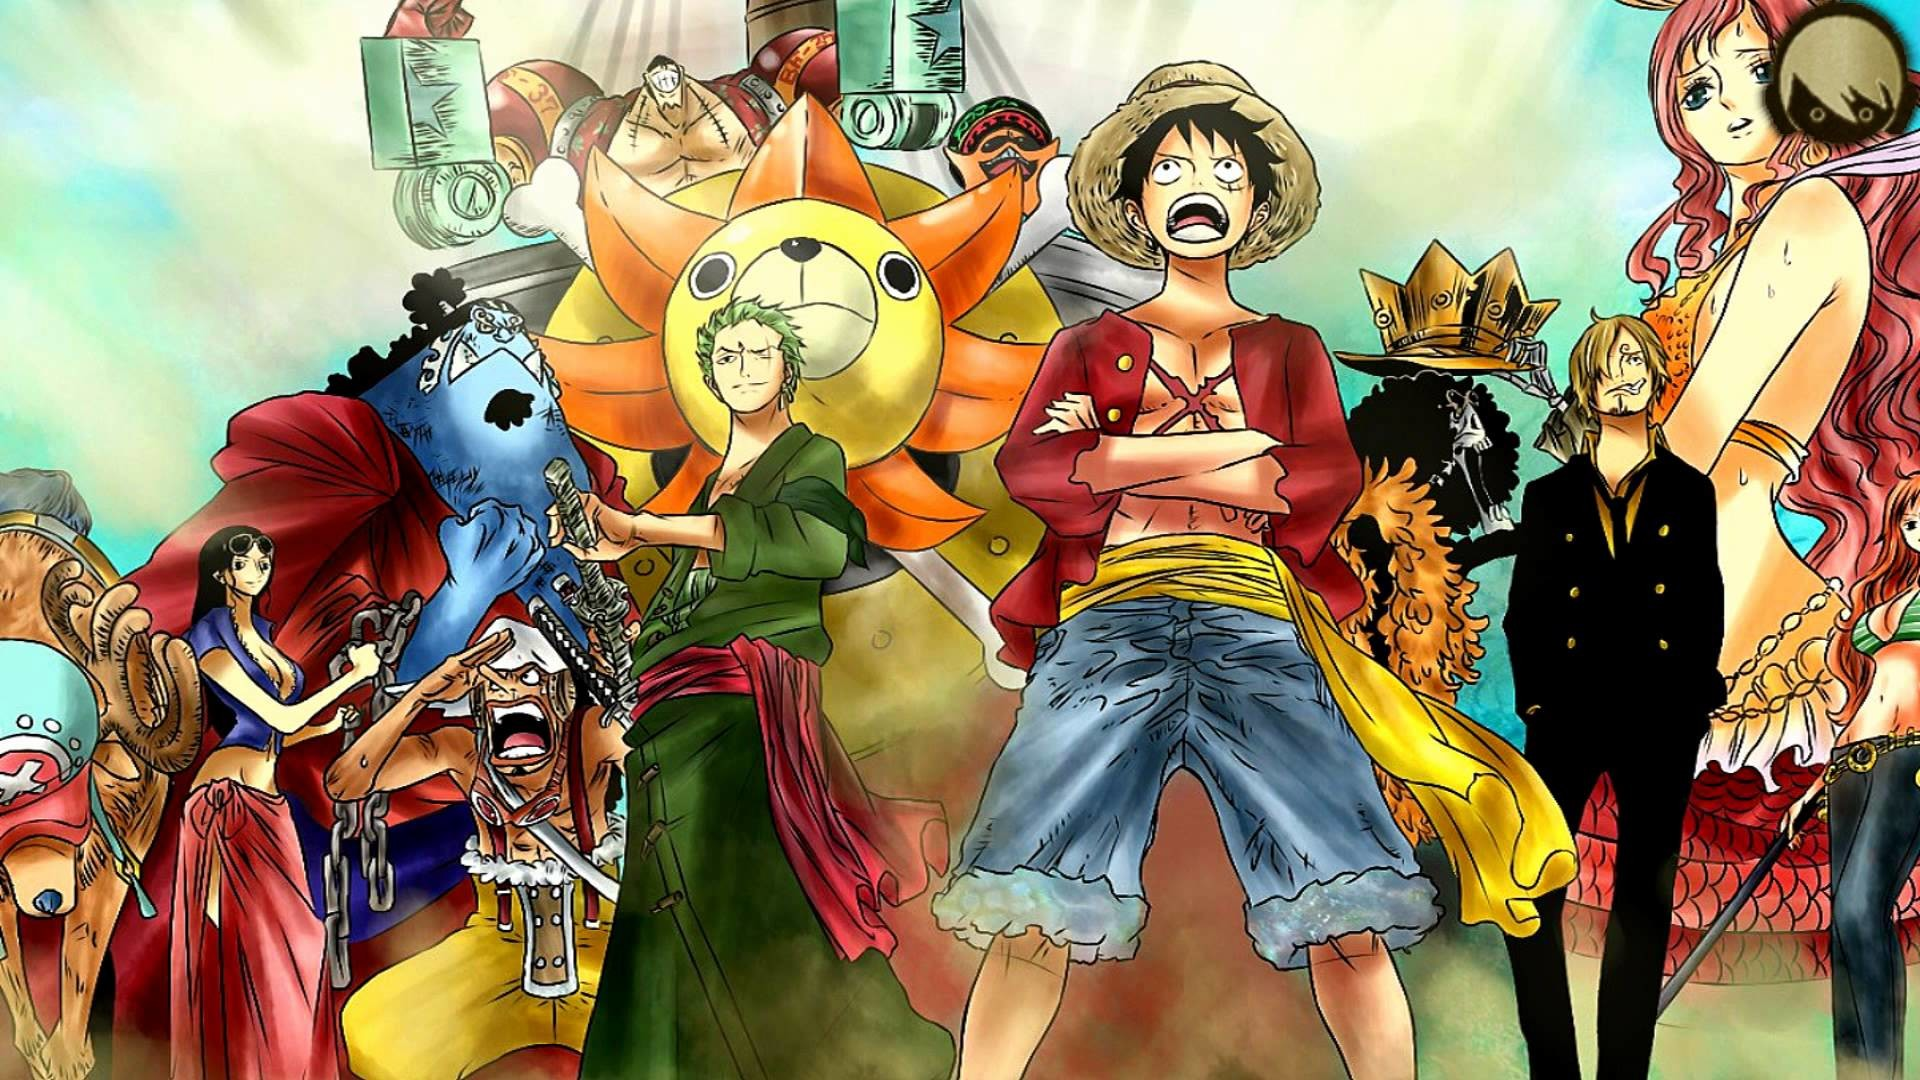 One Piece Anime Wallpaper Posted By Sarah Sellers